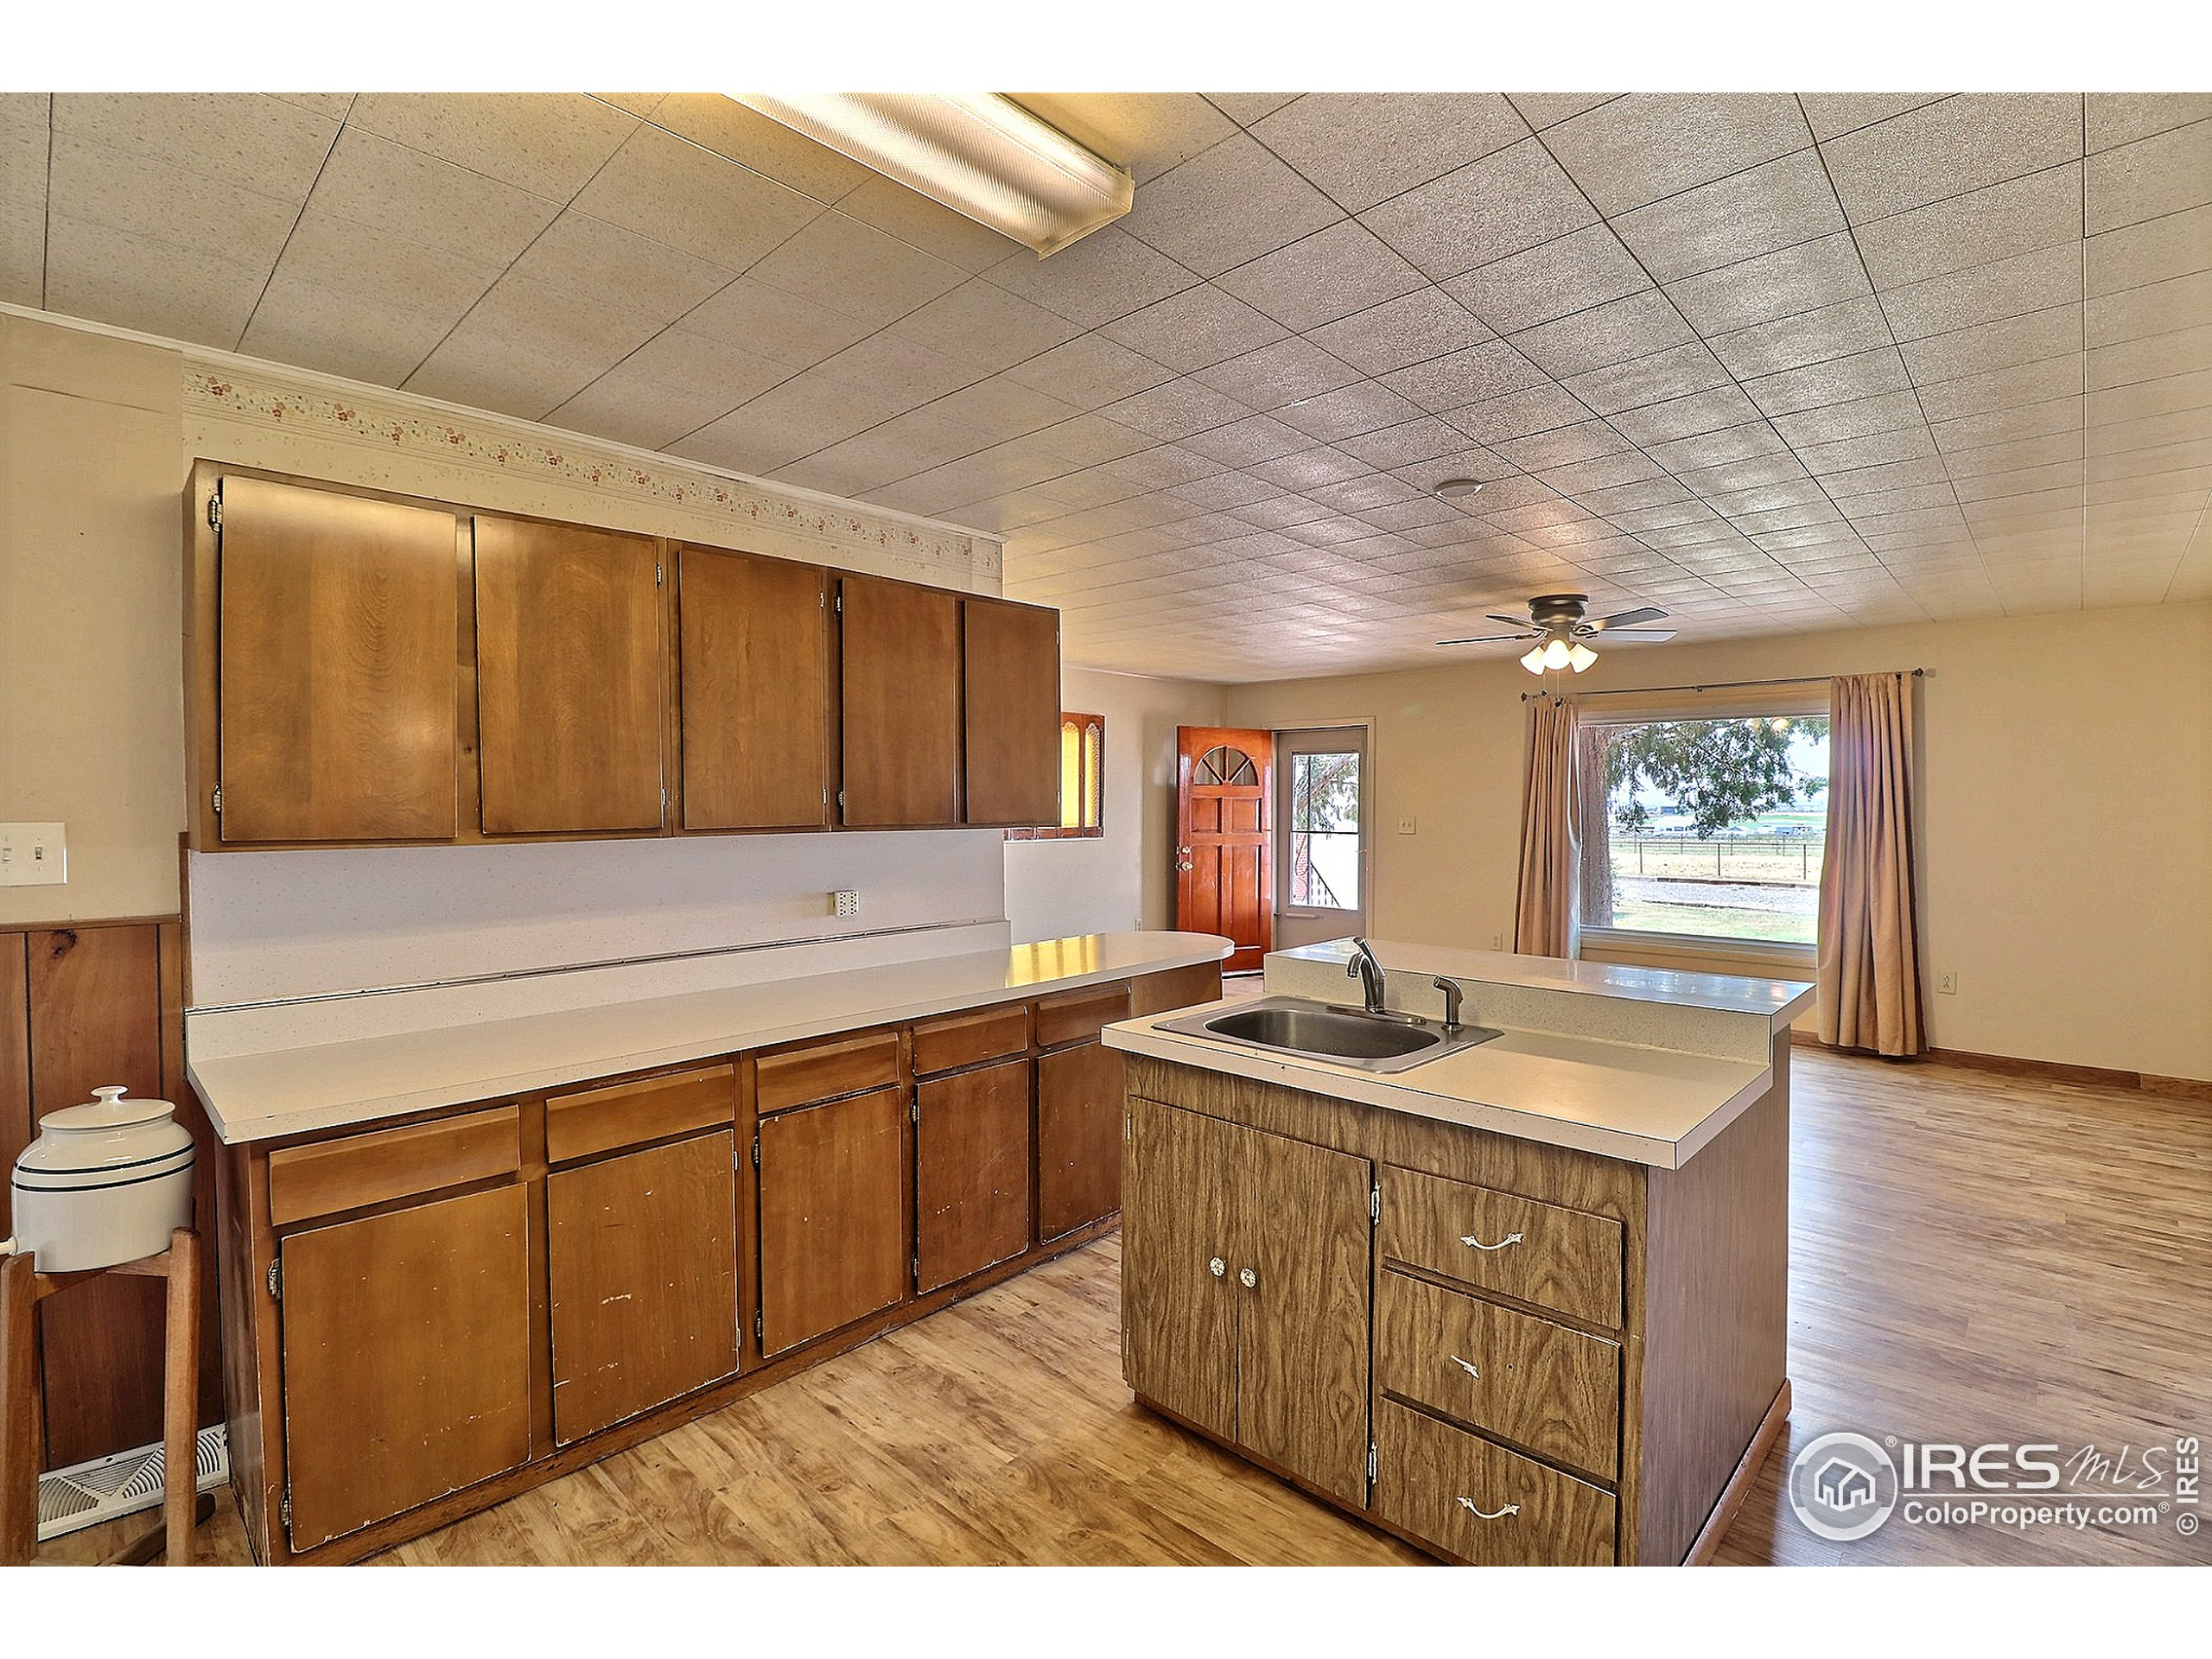 Lots of Cabinets and Countertop Space